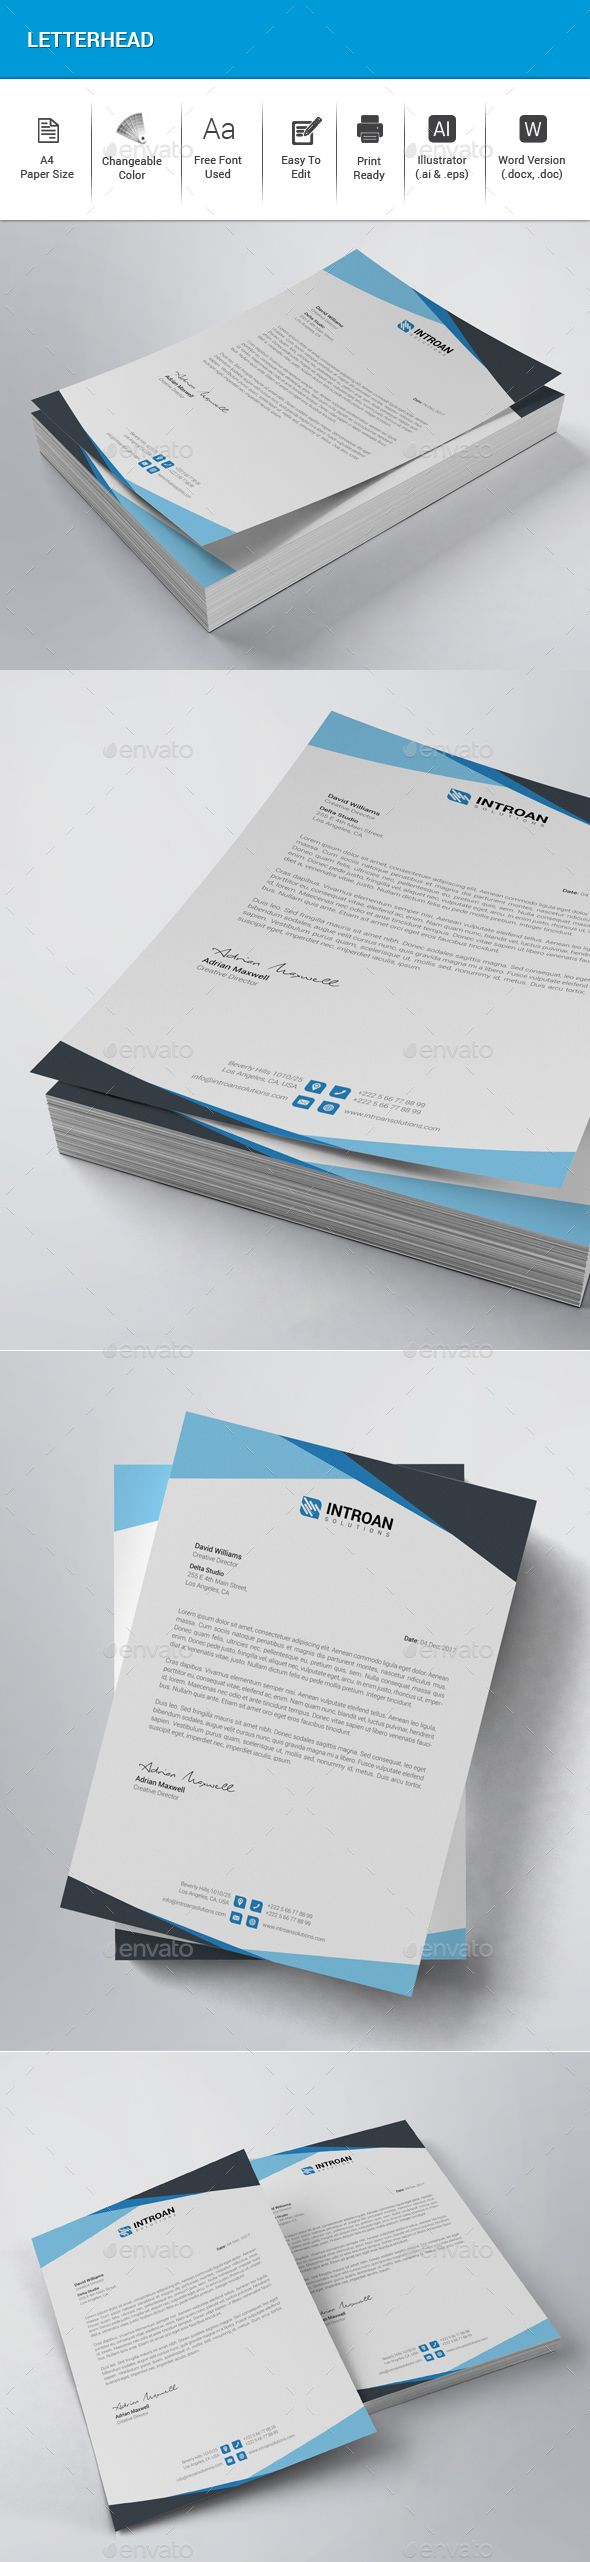 Letterhead Letterhead template Stationery printing and